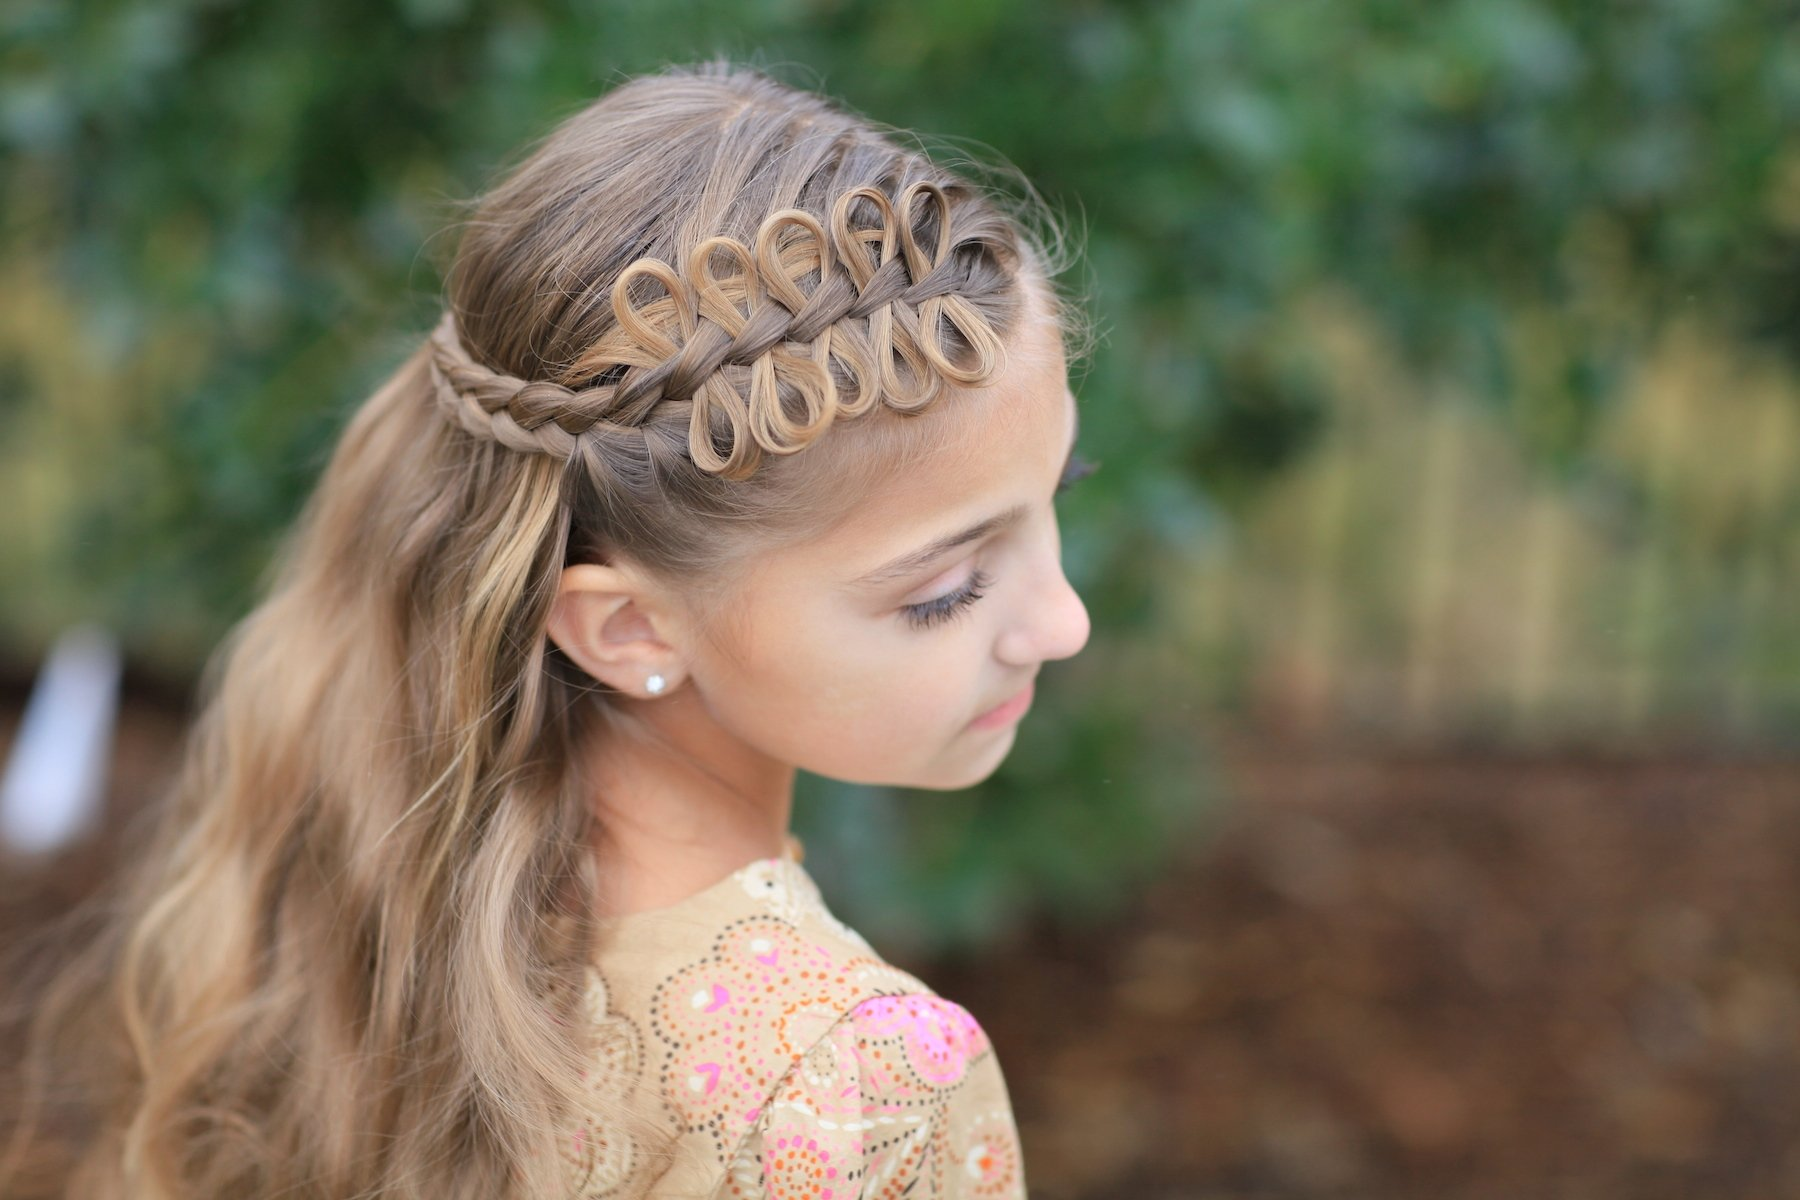 25 Little Girl Hairstyles You Can Do Yourself